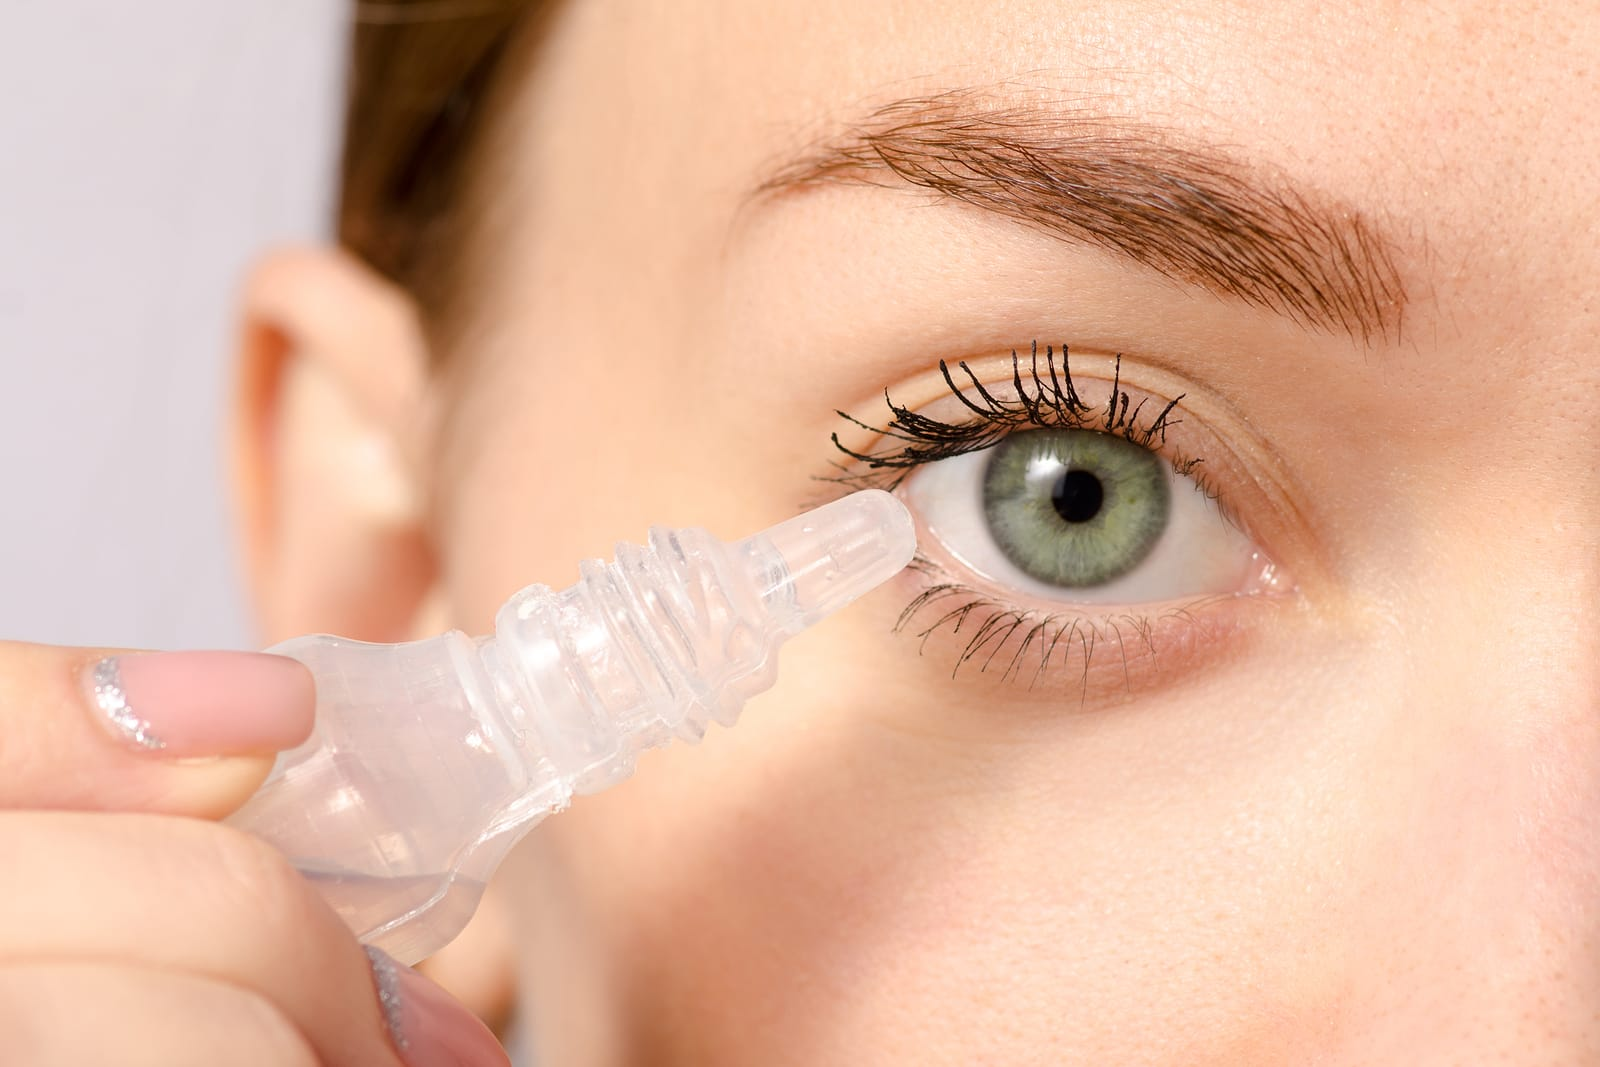 Eye Drops To Treat Dry Eyes